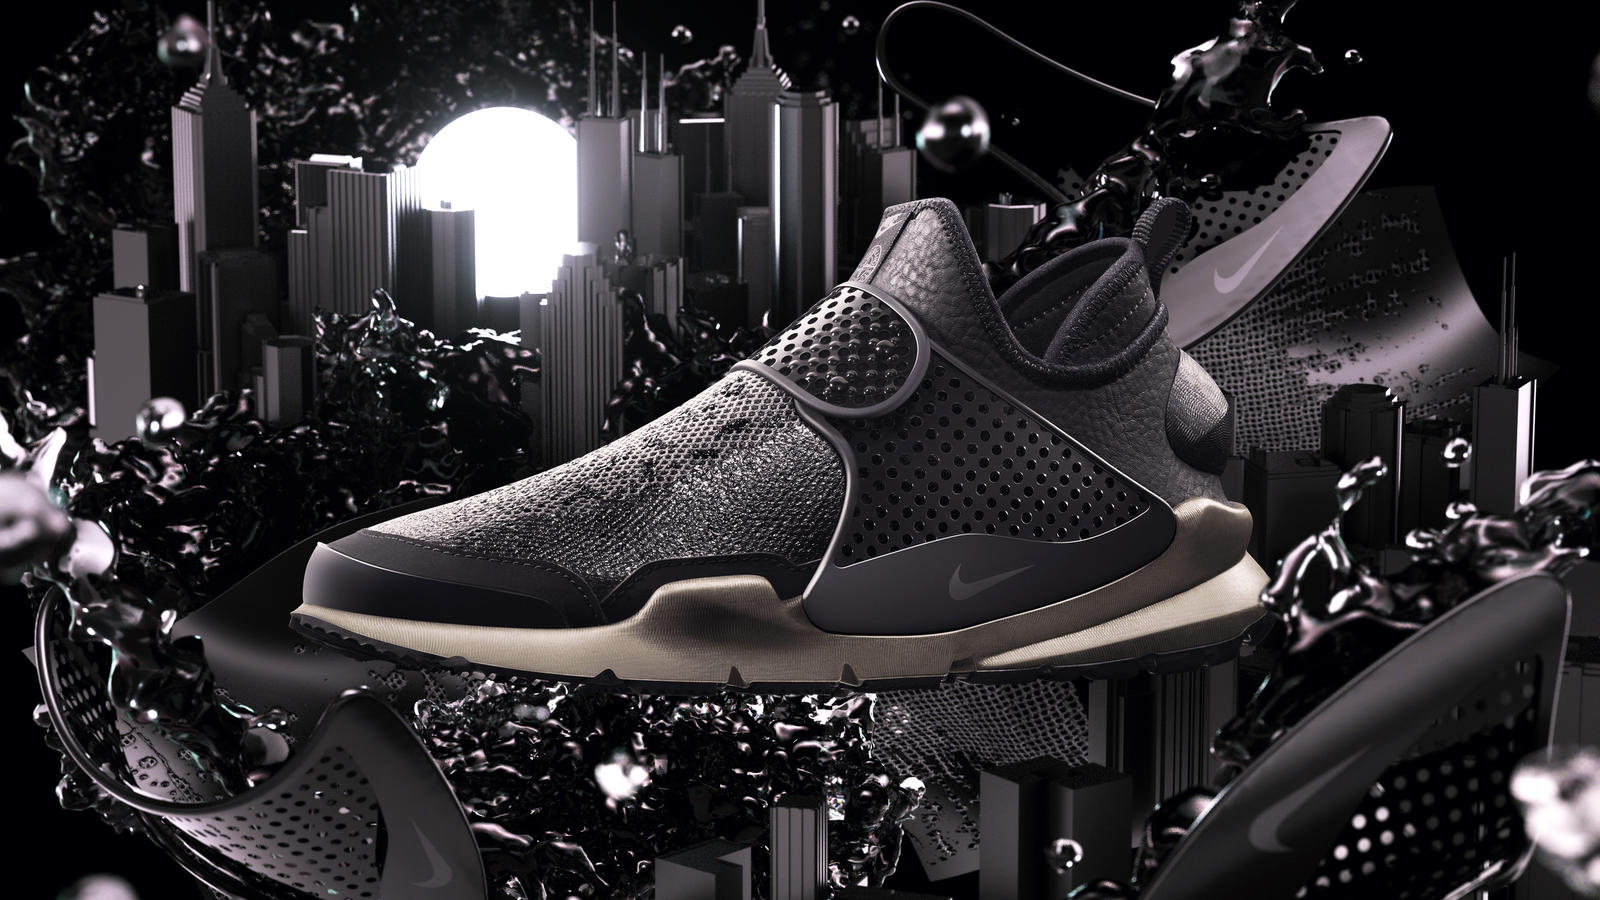 newest 9b6a6 aa6c8 The NikeLab Sock Dart Mid x Stone Island - Nike News